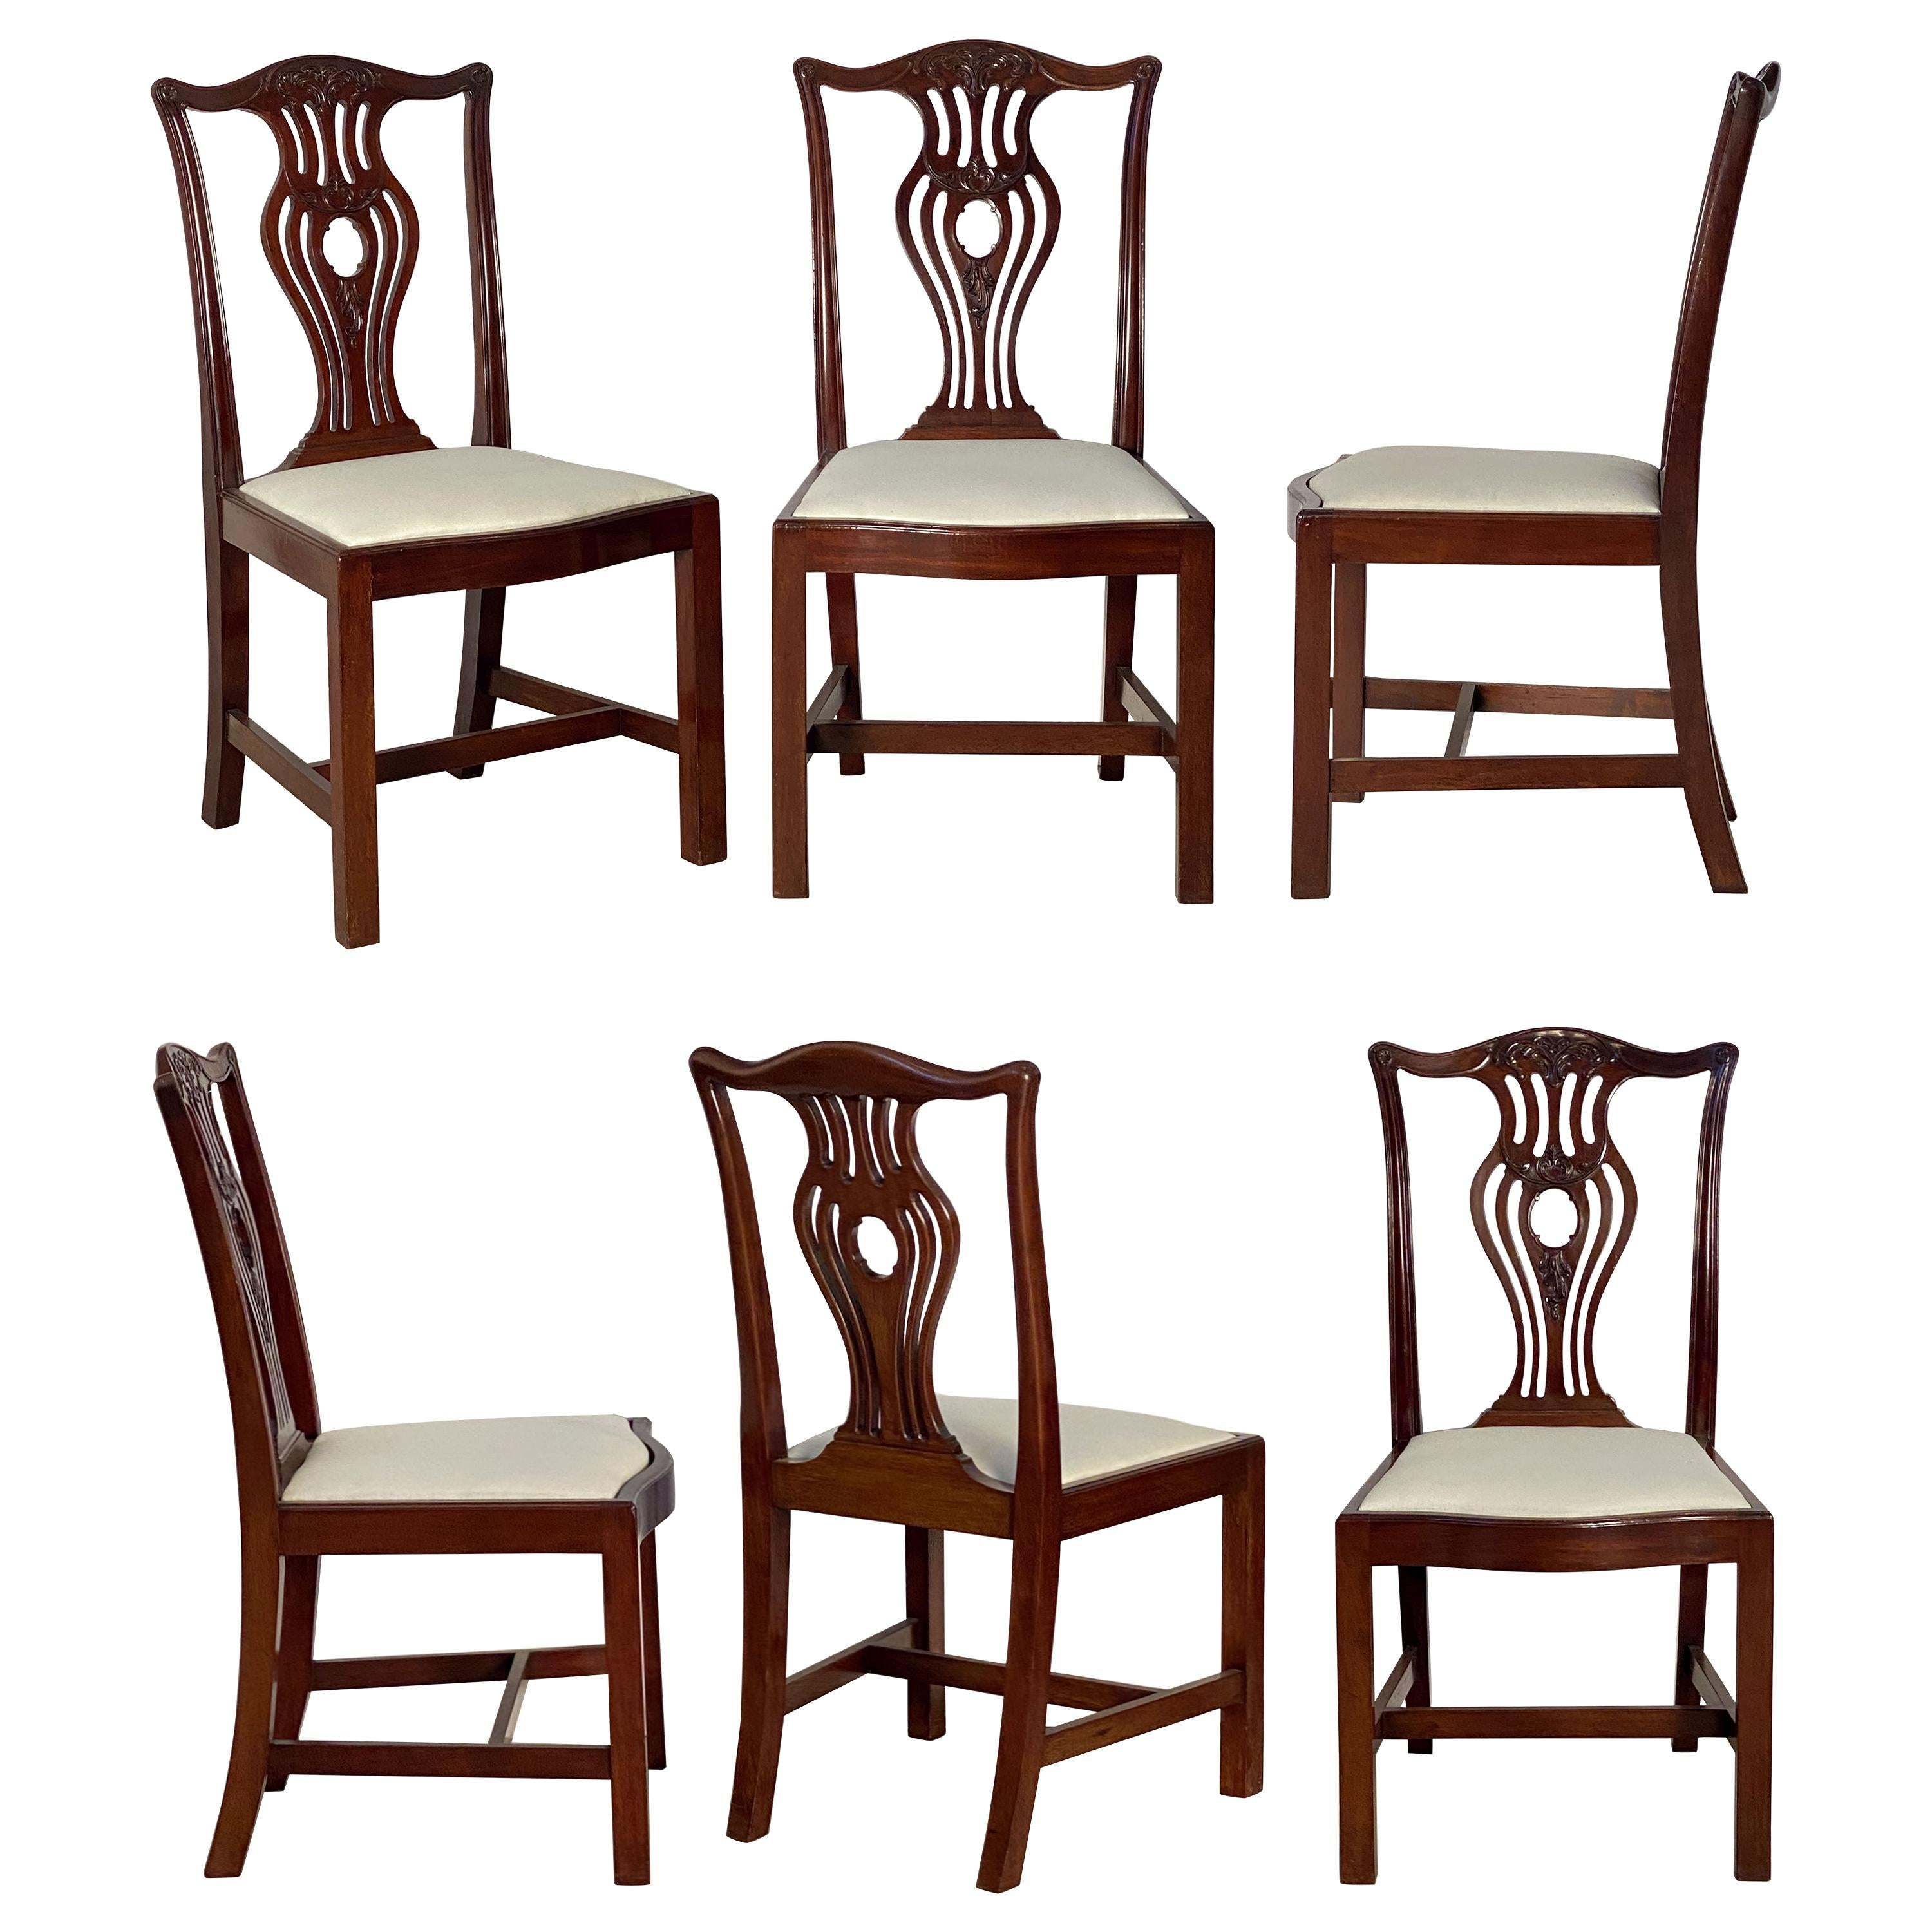 Set of Six English Dining Chairs of Mahogany in the Art Nouveau Style